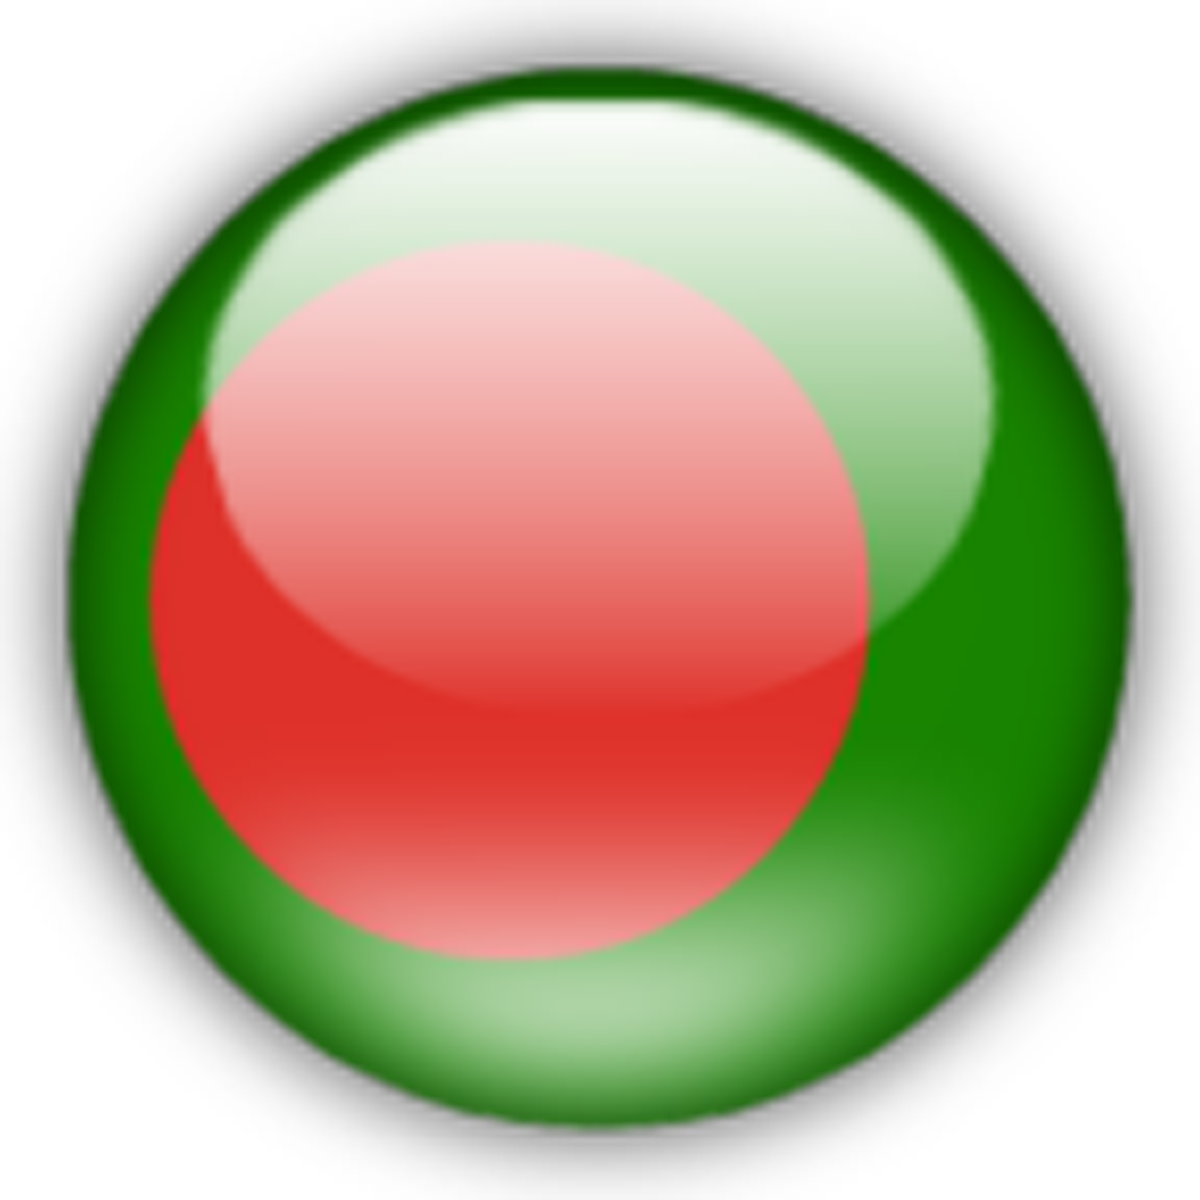 http://4.bp.blogspot.com/-H3TISQjCgmU/TeT-xOdk7OI/AAAAAAAABIg/YbWN8aniUks/s1600/graphics+wallpapers+Flag+of+Bangladesh+%25283%2529.png